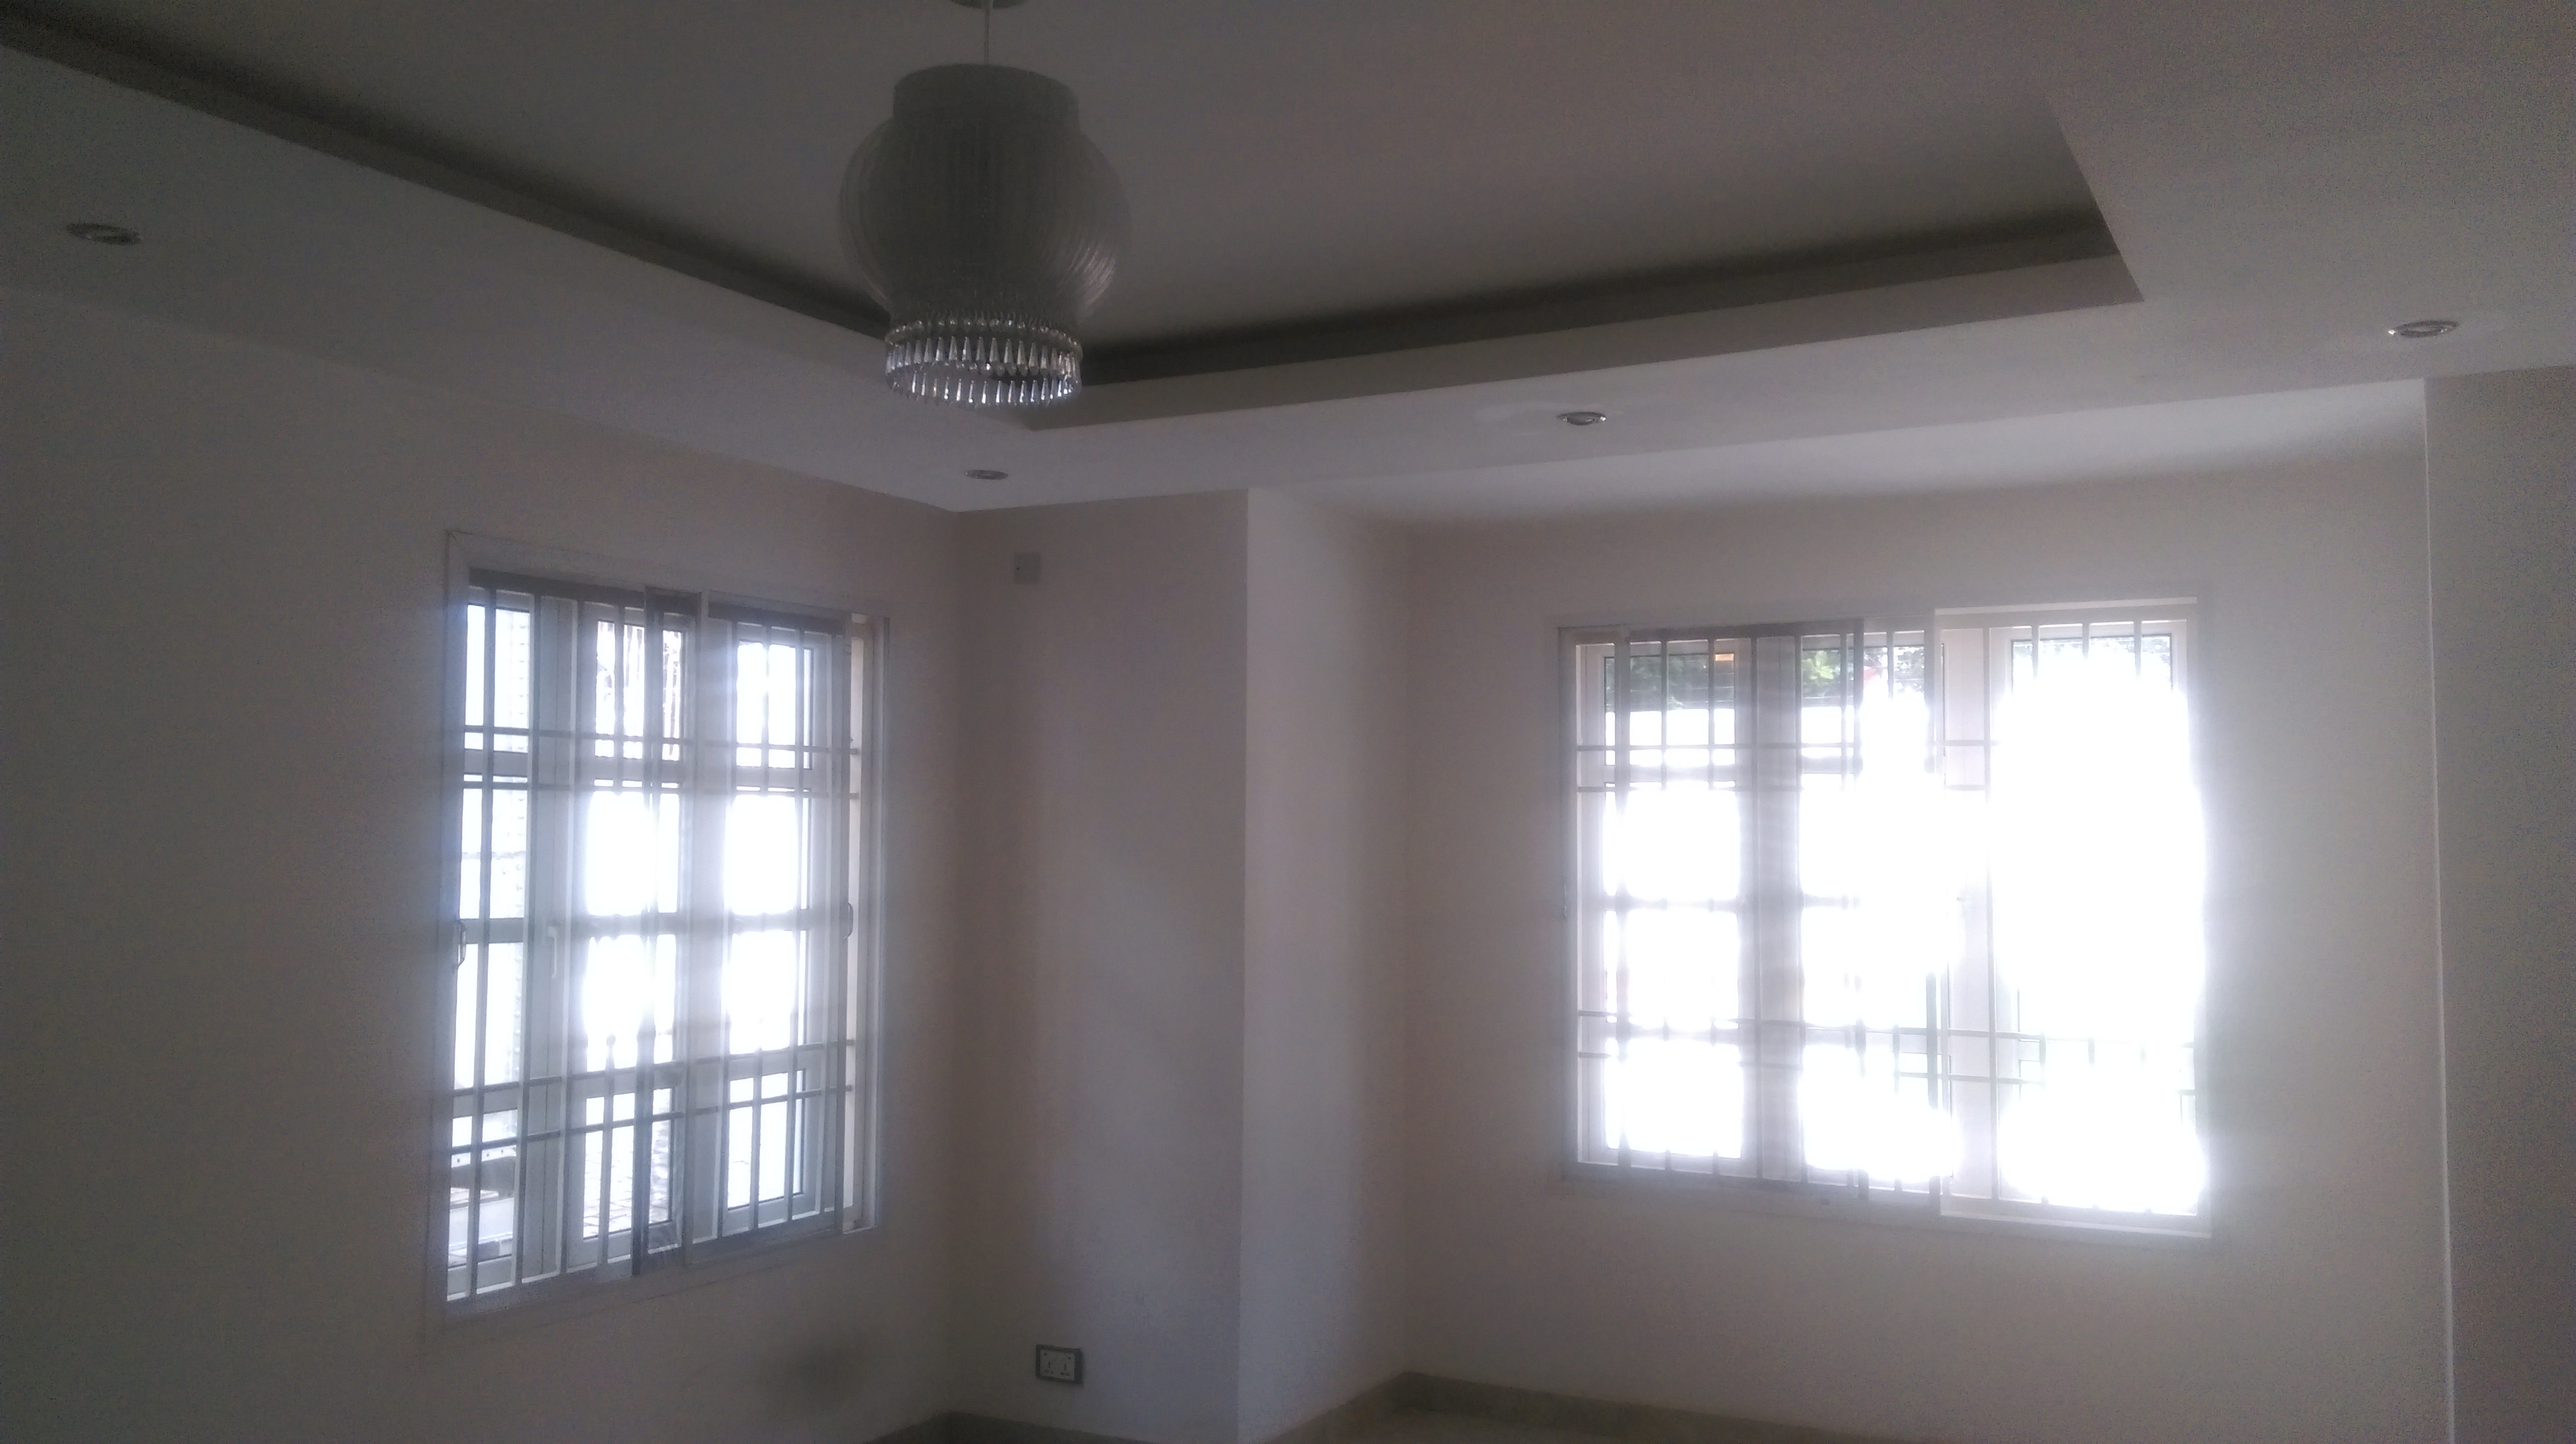 5 units of 4 bedroom duplex for rent abuja properties - 4 bedroom duplex for rent near me ...